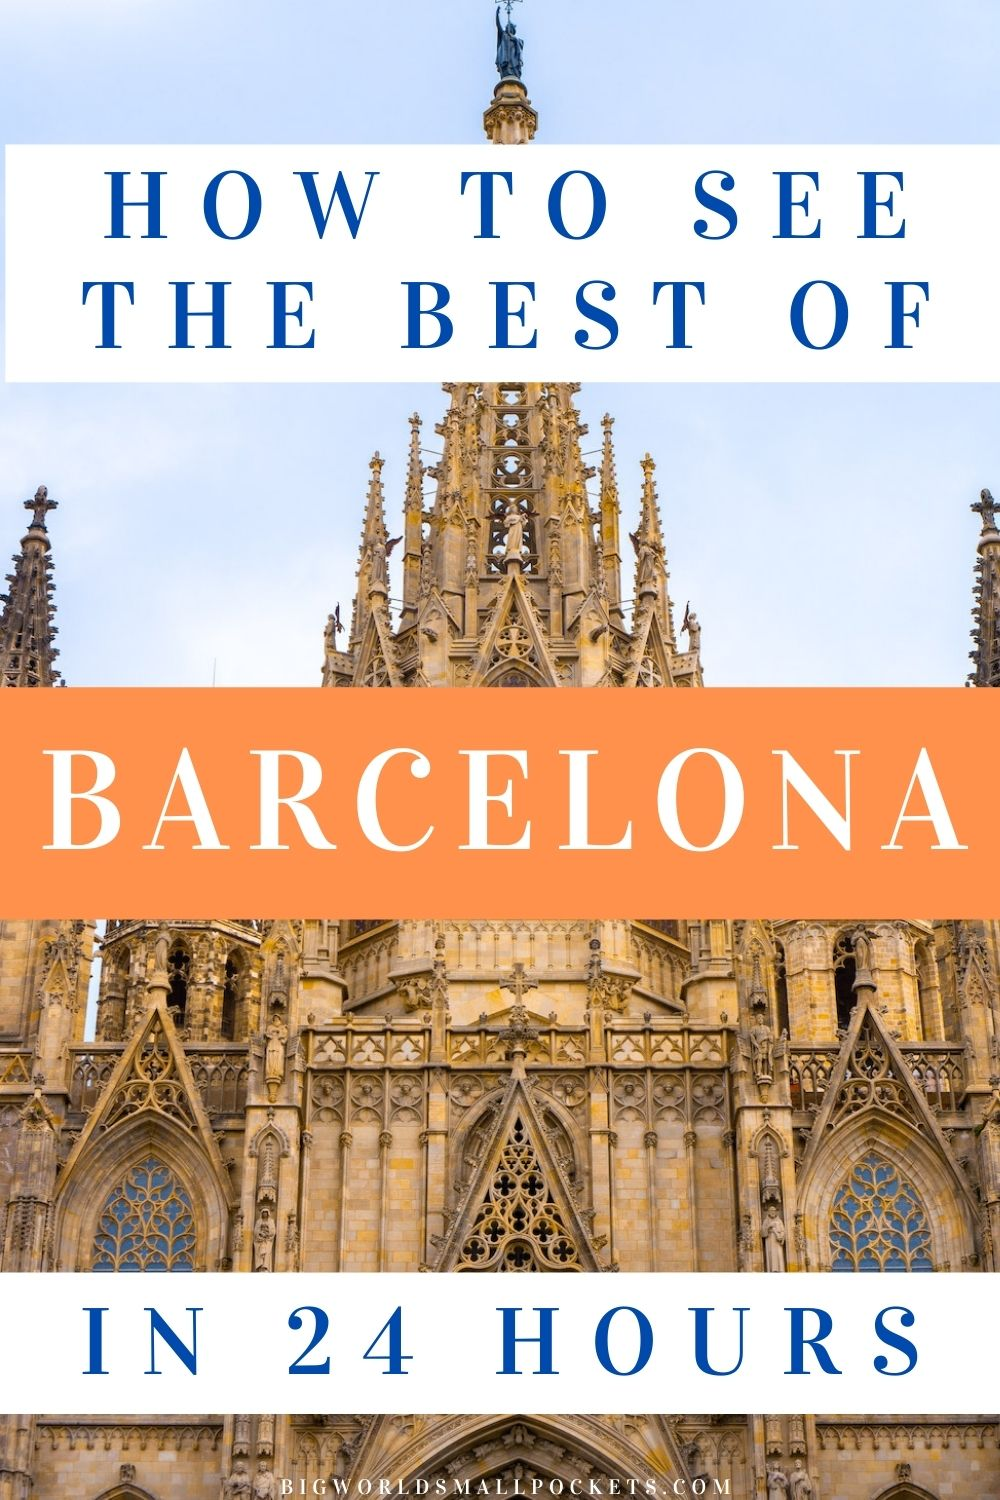 How to See the Best of Barcelona in a Day